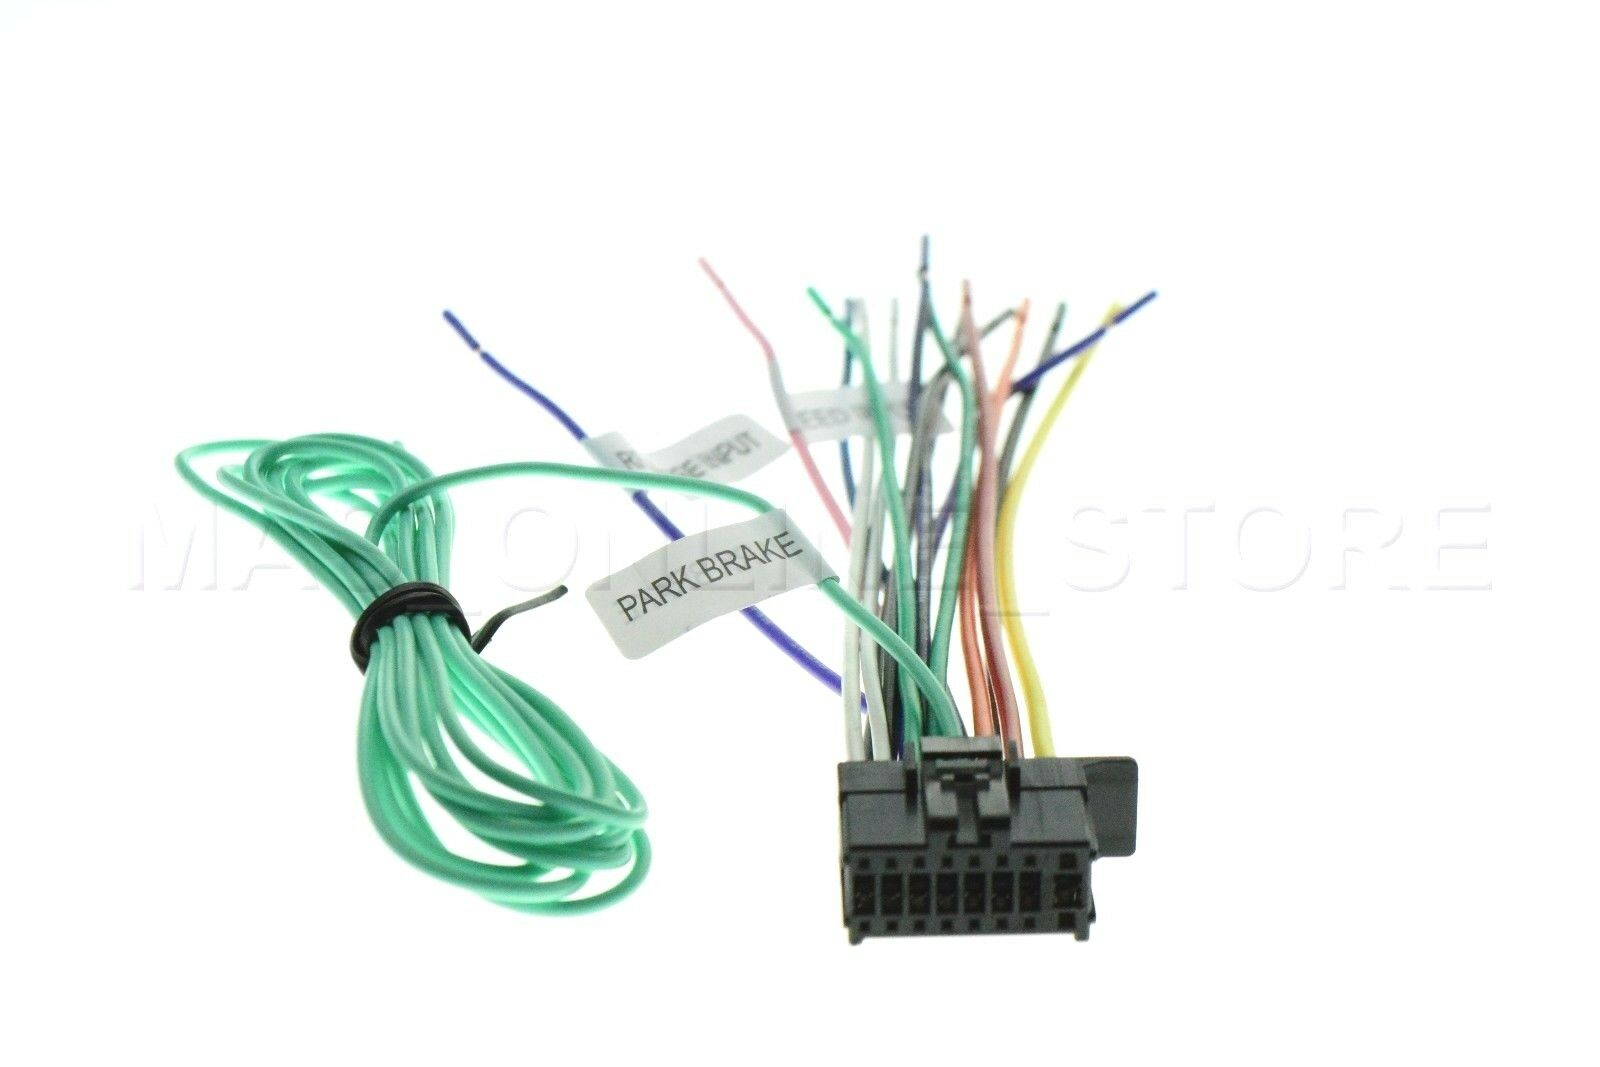 Wire Harness Mic Pioneer Avic 6000nex Avic6000nex 7000nex Avh P3100dvd Parking Brake Bypass Norton Secured Powered By Verisign